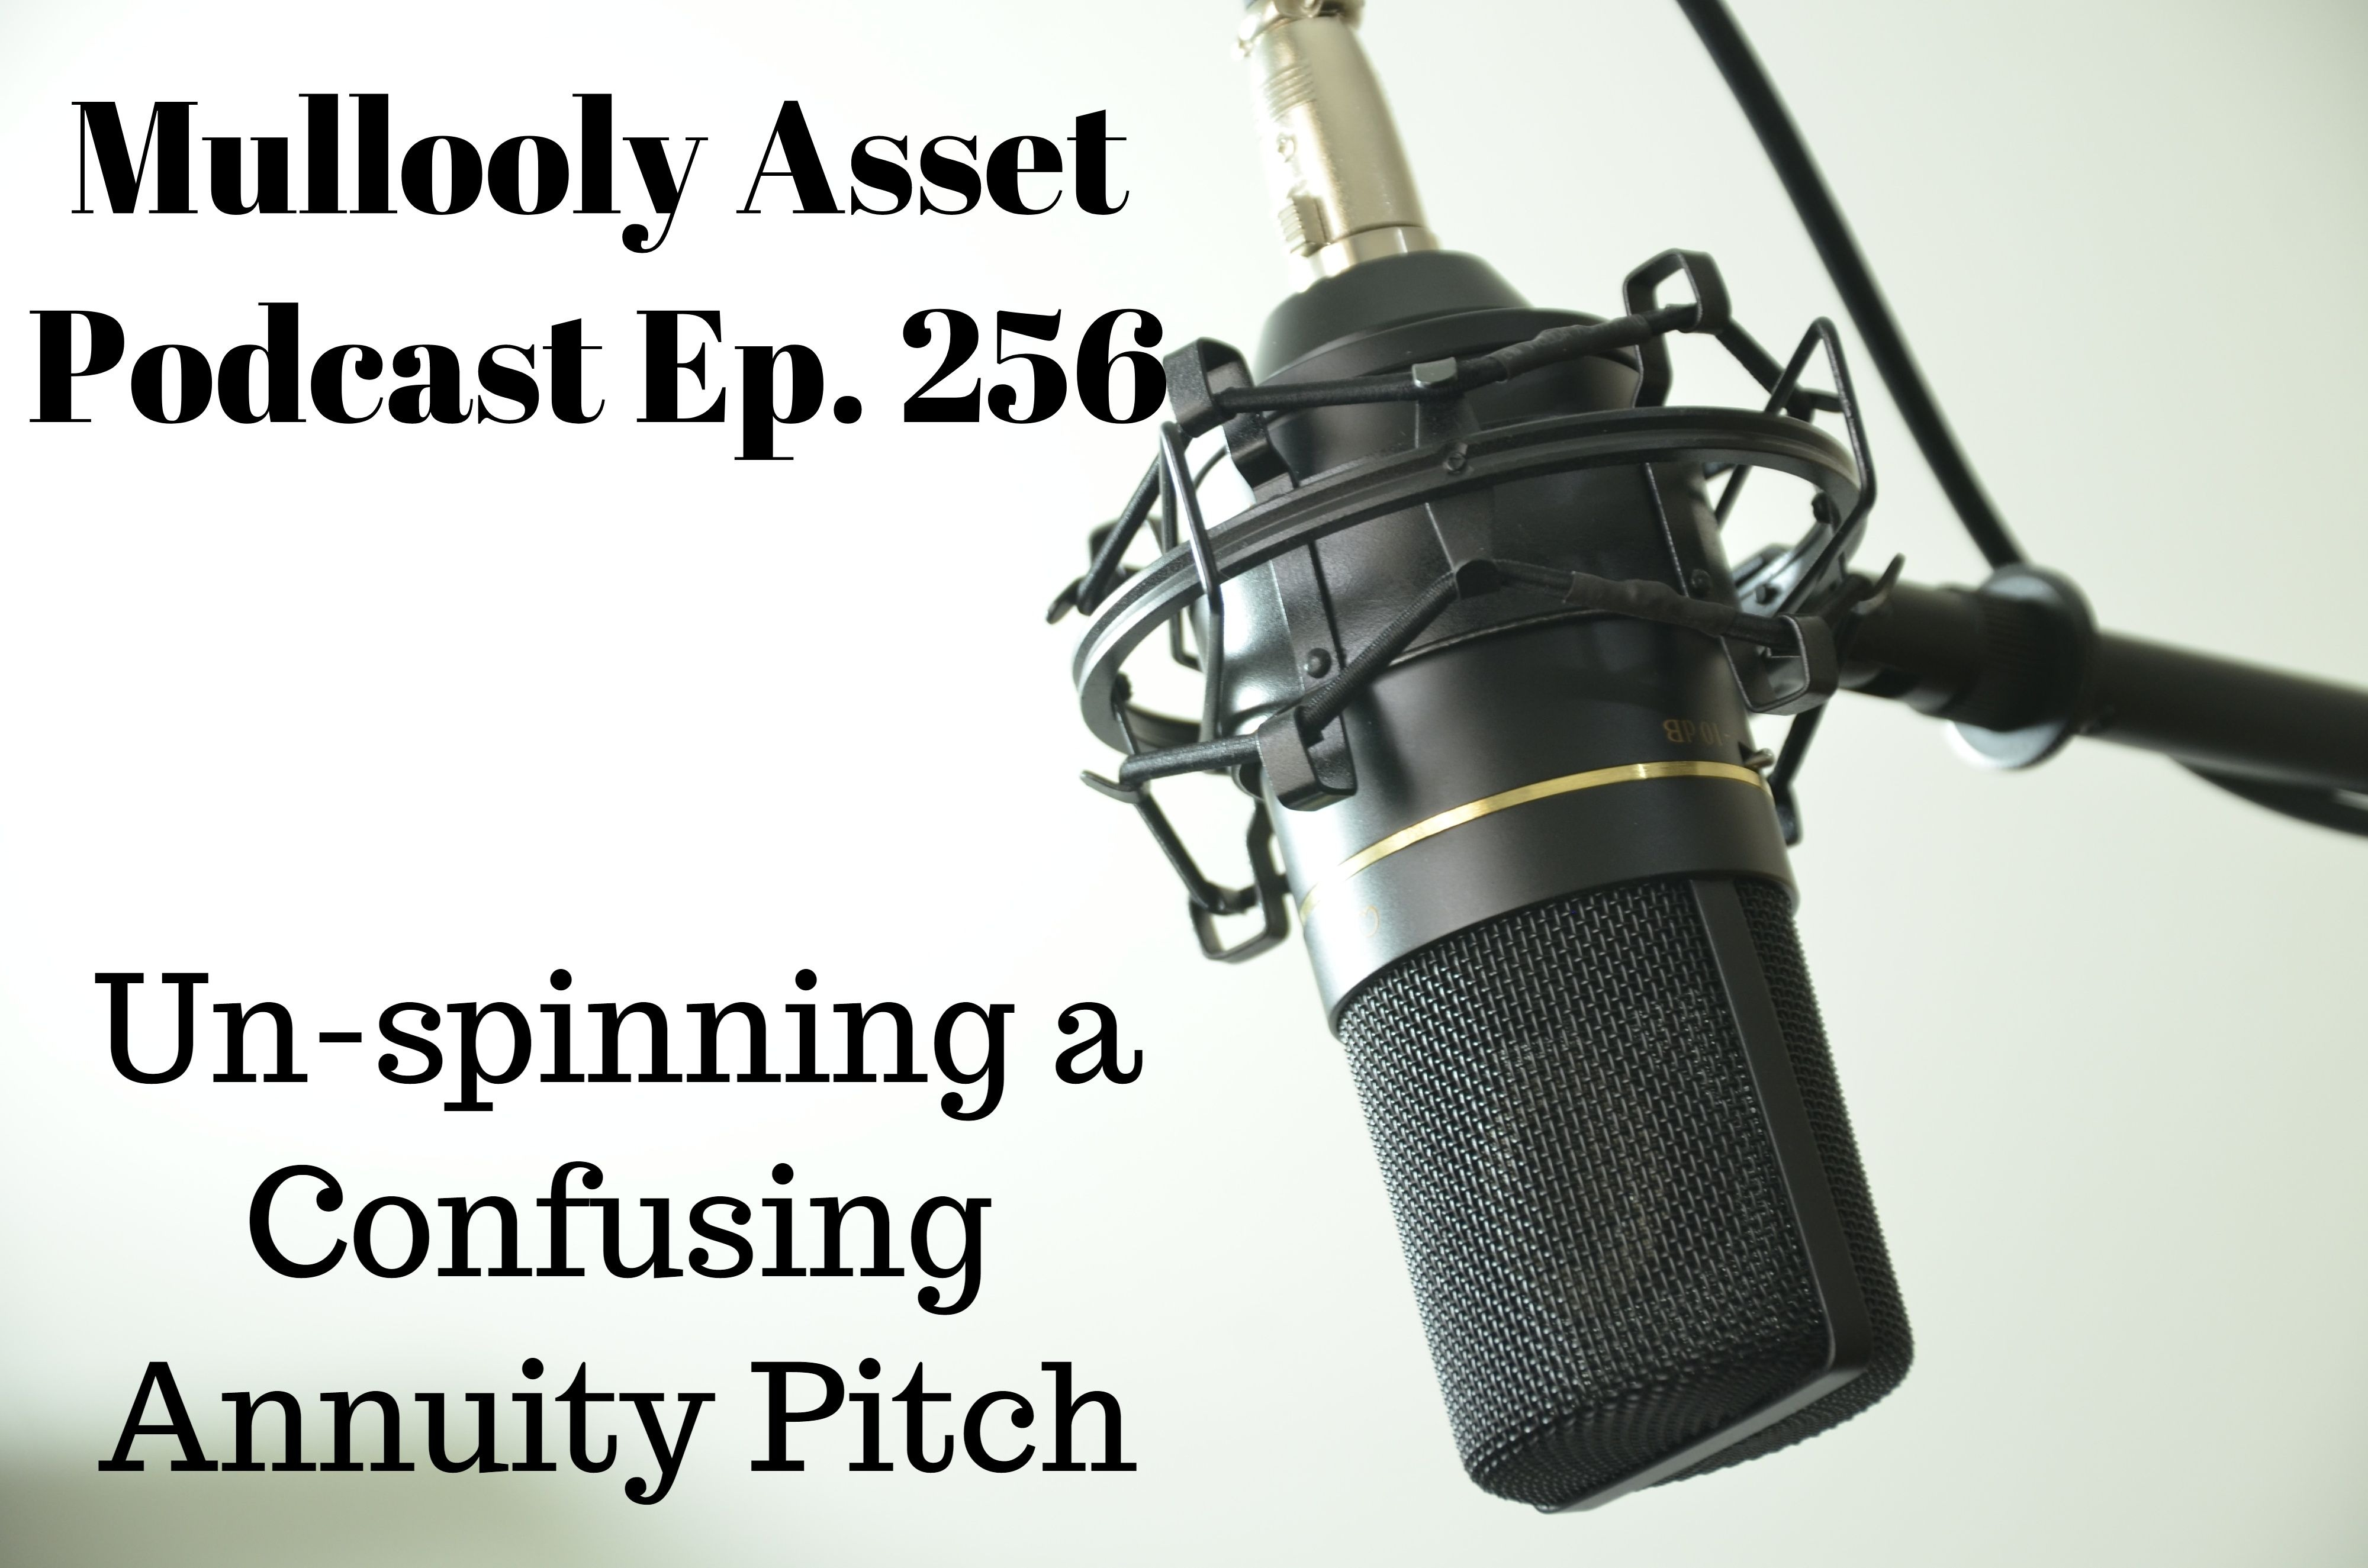 Un-spinning a Confusing Annuity Pitch